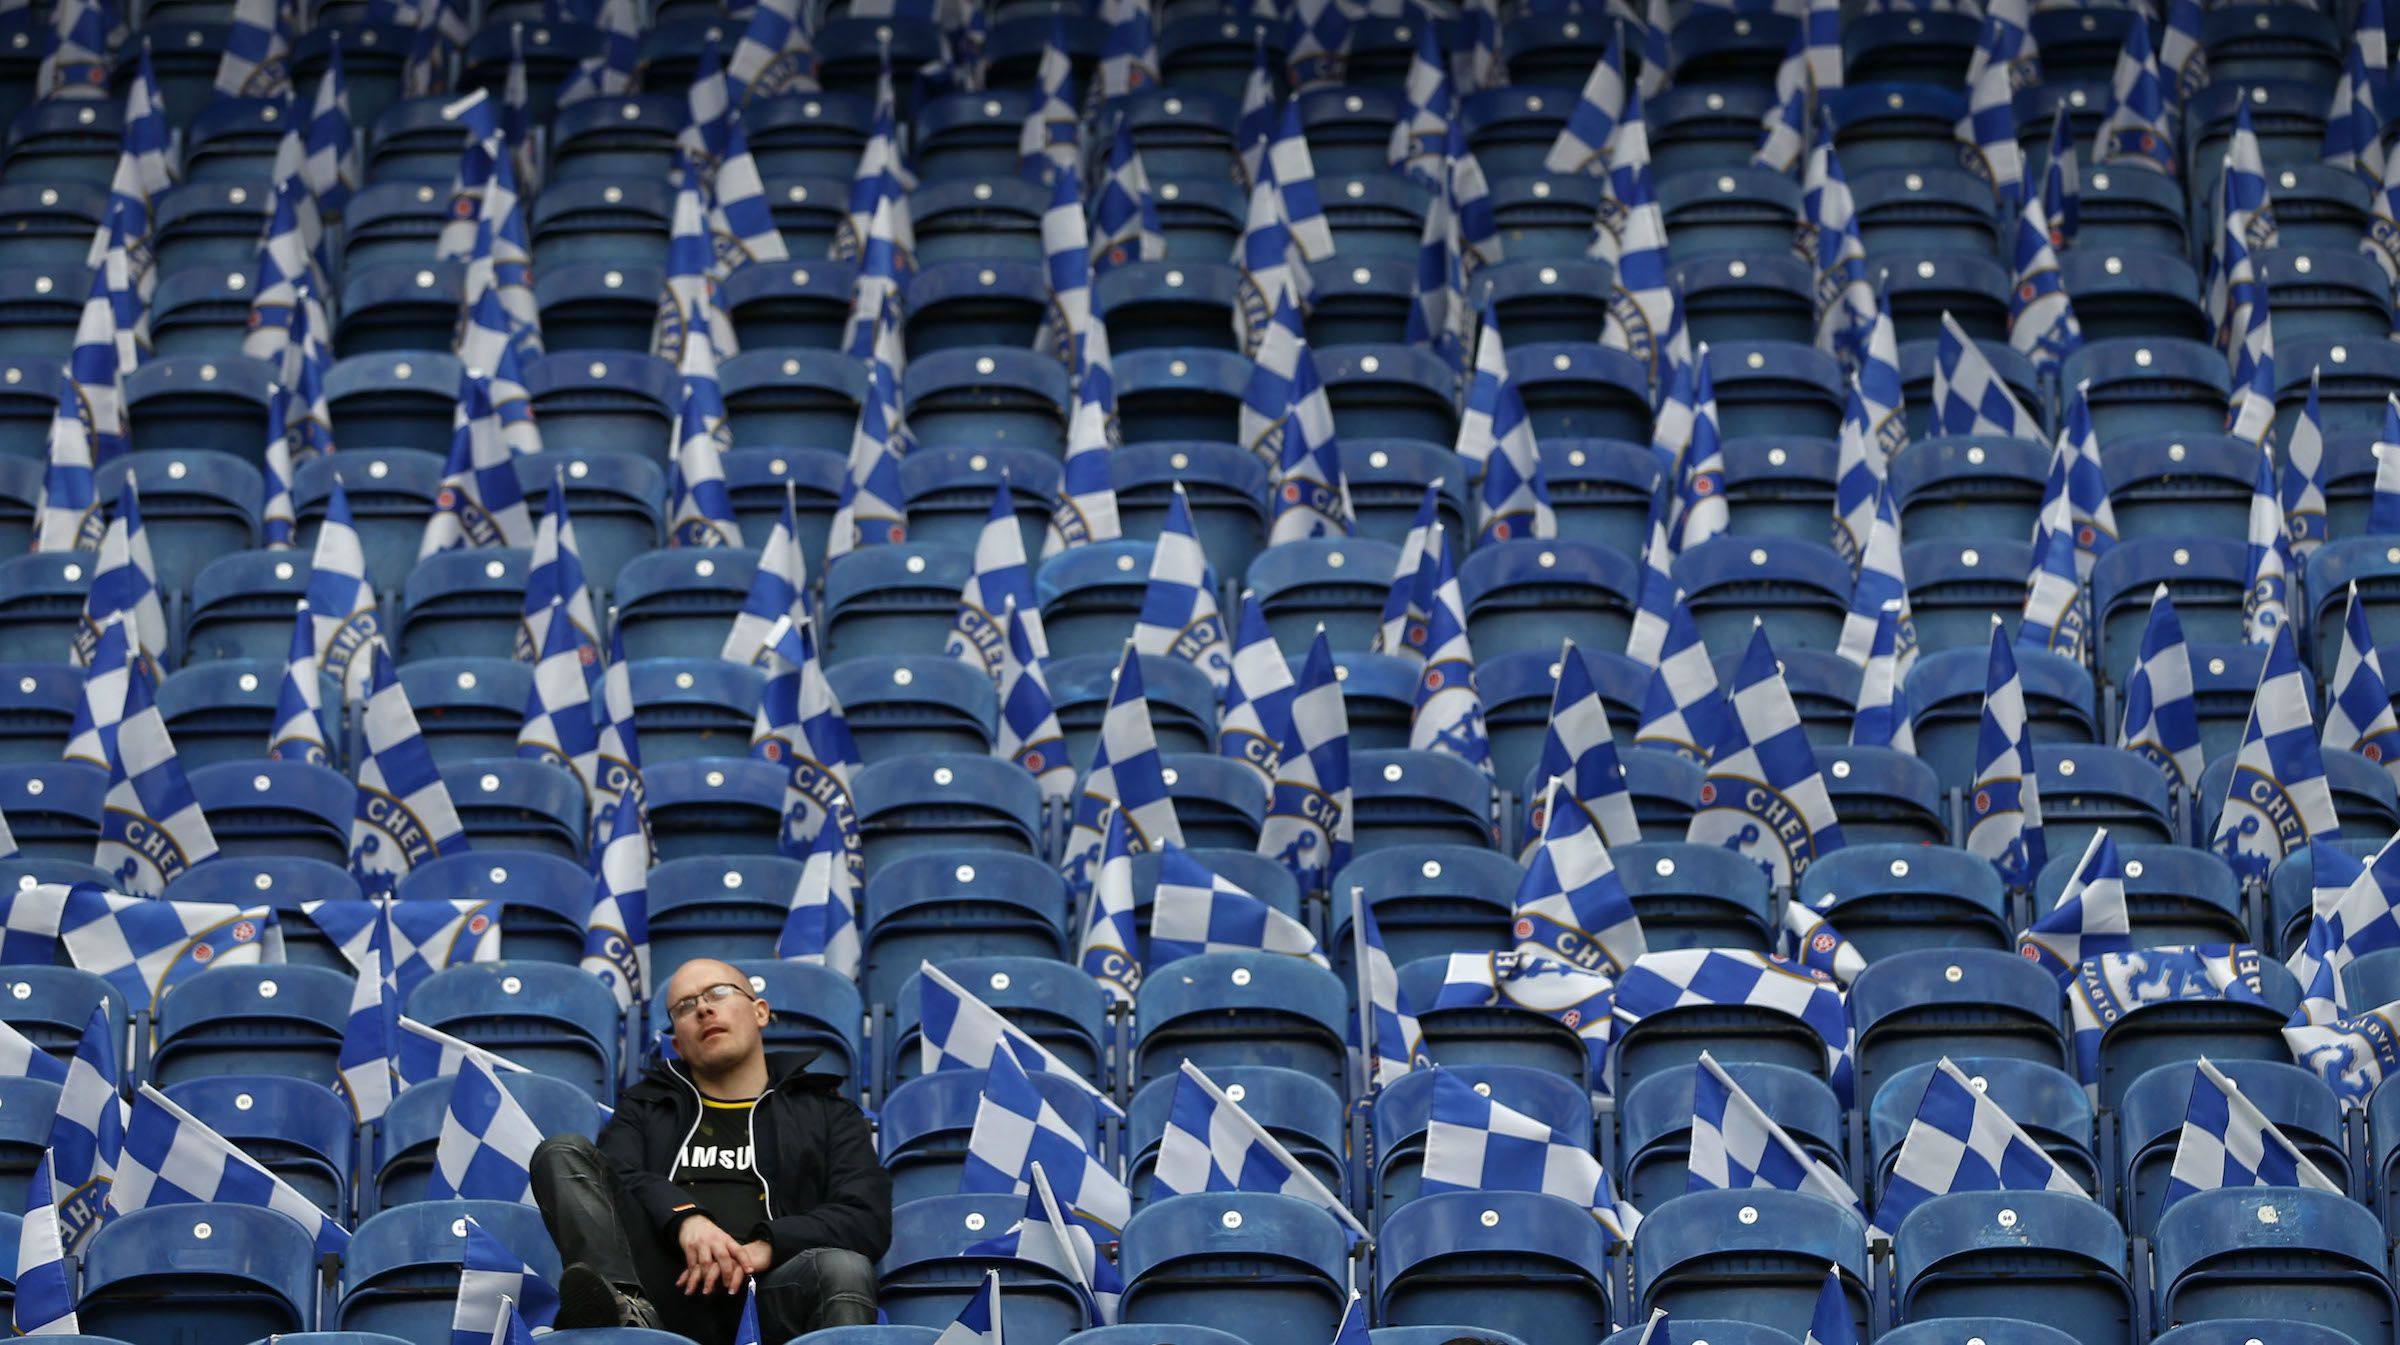 A Chelsea fan sits in the stands before the Europa League final soccer match against Benfica at the Amsterdam Arena May 15, 2013. REUTERS/Eddie Keogh (NETHERLANDS - Tags: SPORT SOCCER) - RTXZNOL